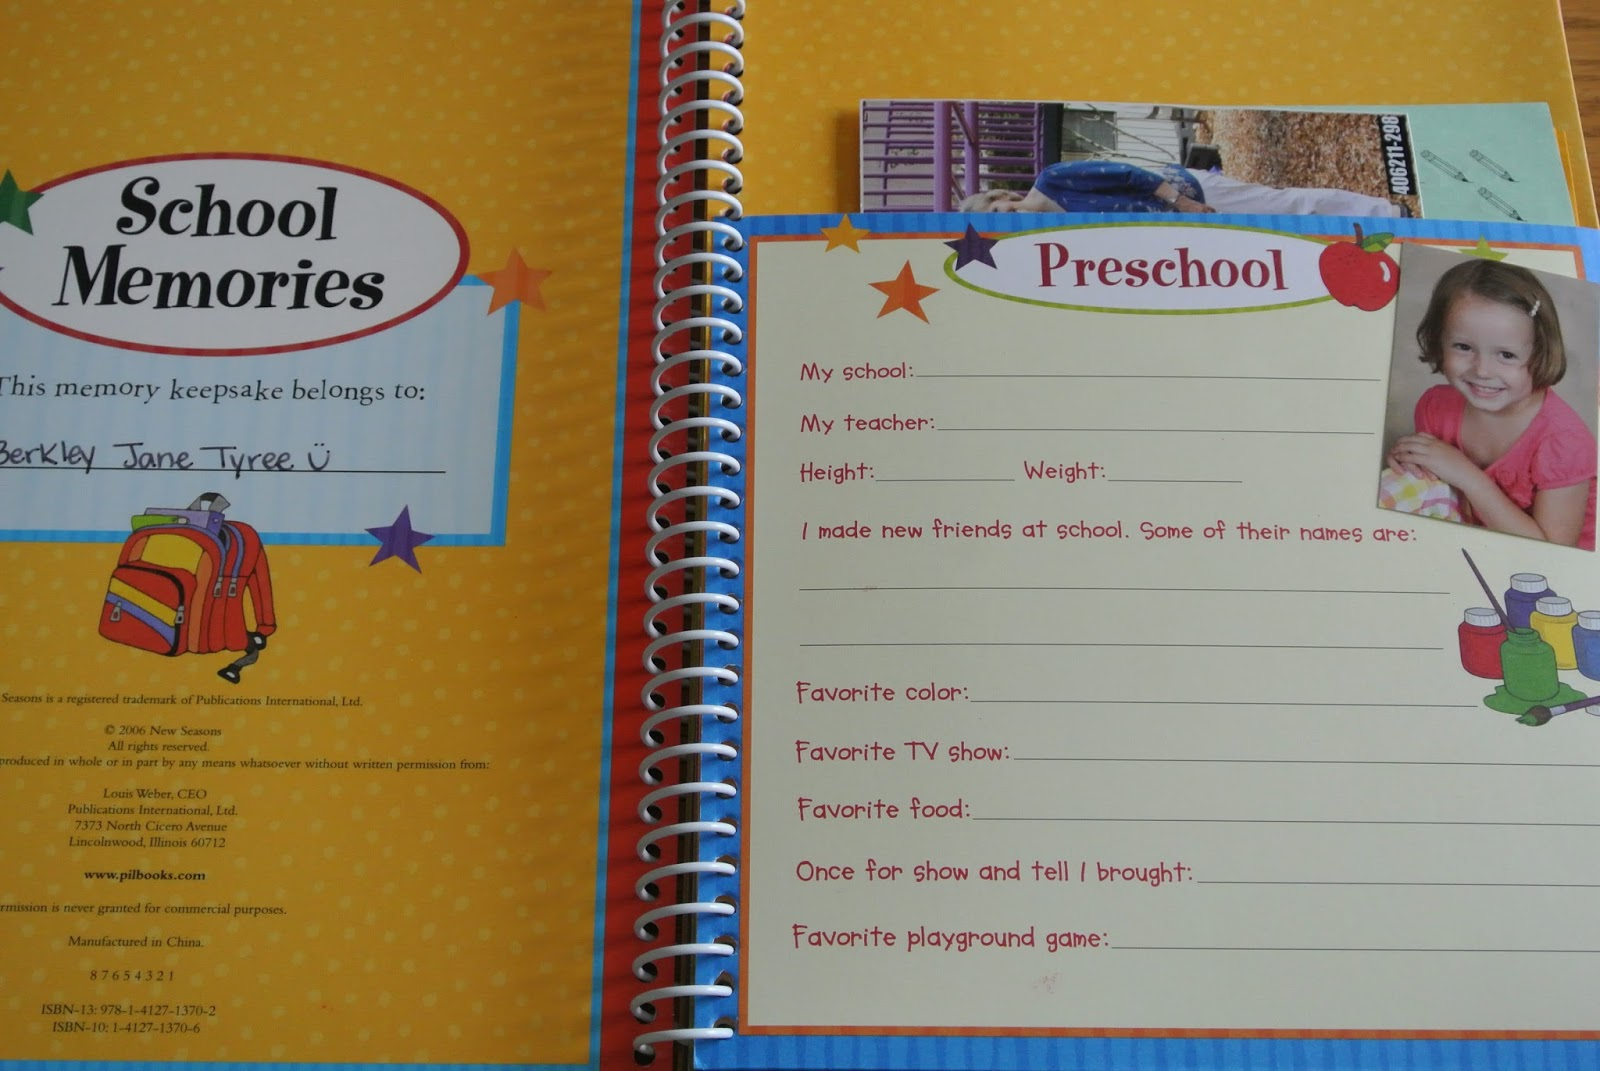 my first school memories The complete storage solution for your child's school memories holds school photos, school reports, awards, certificates, artwork, party invites and more from kinder to year 12.